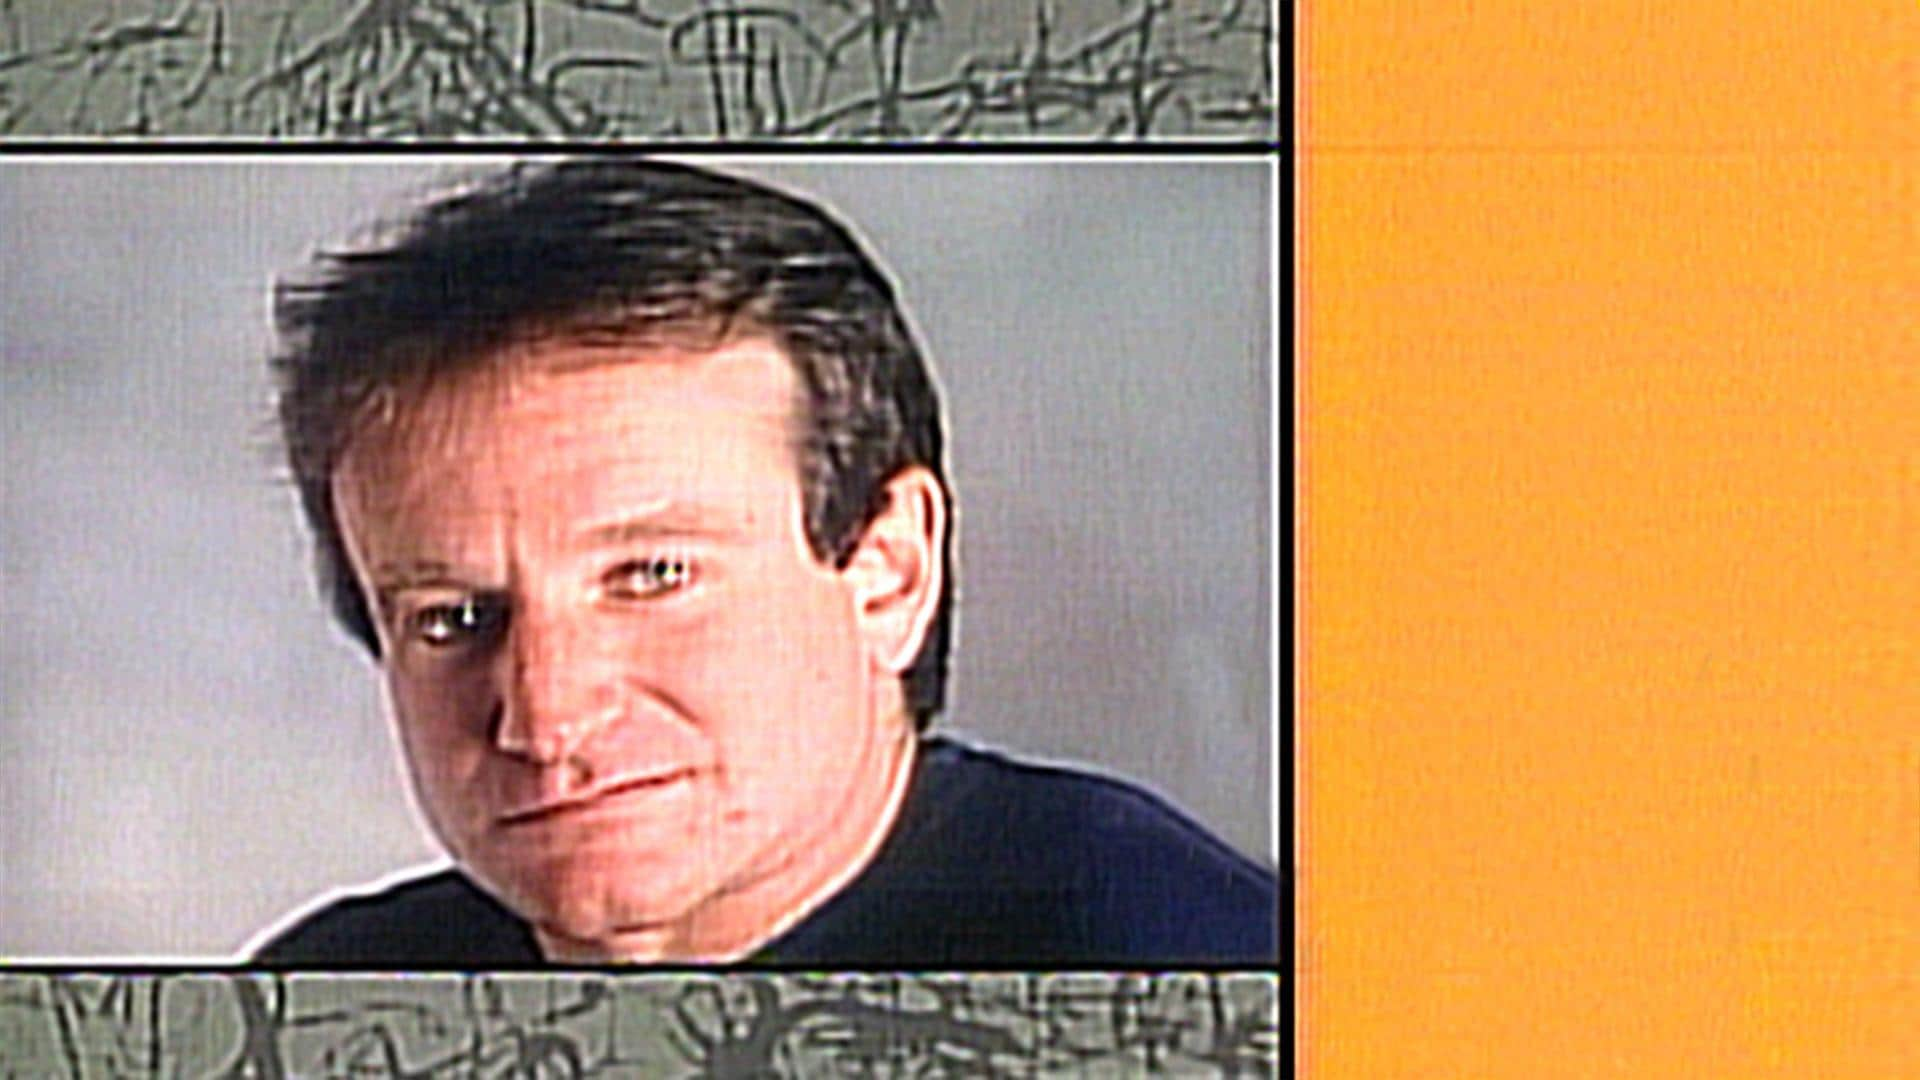 Robin Williams: November 22, 1986